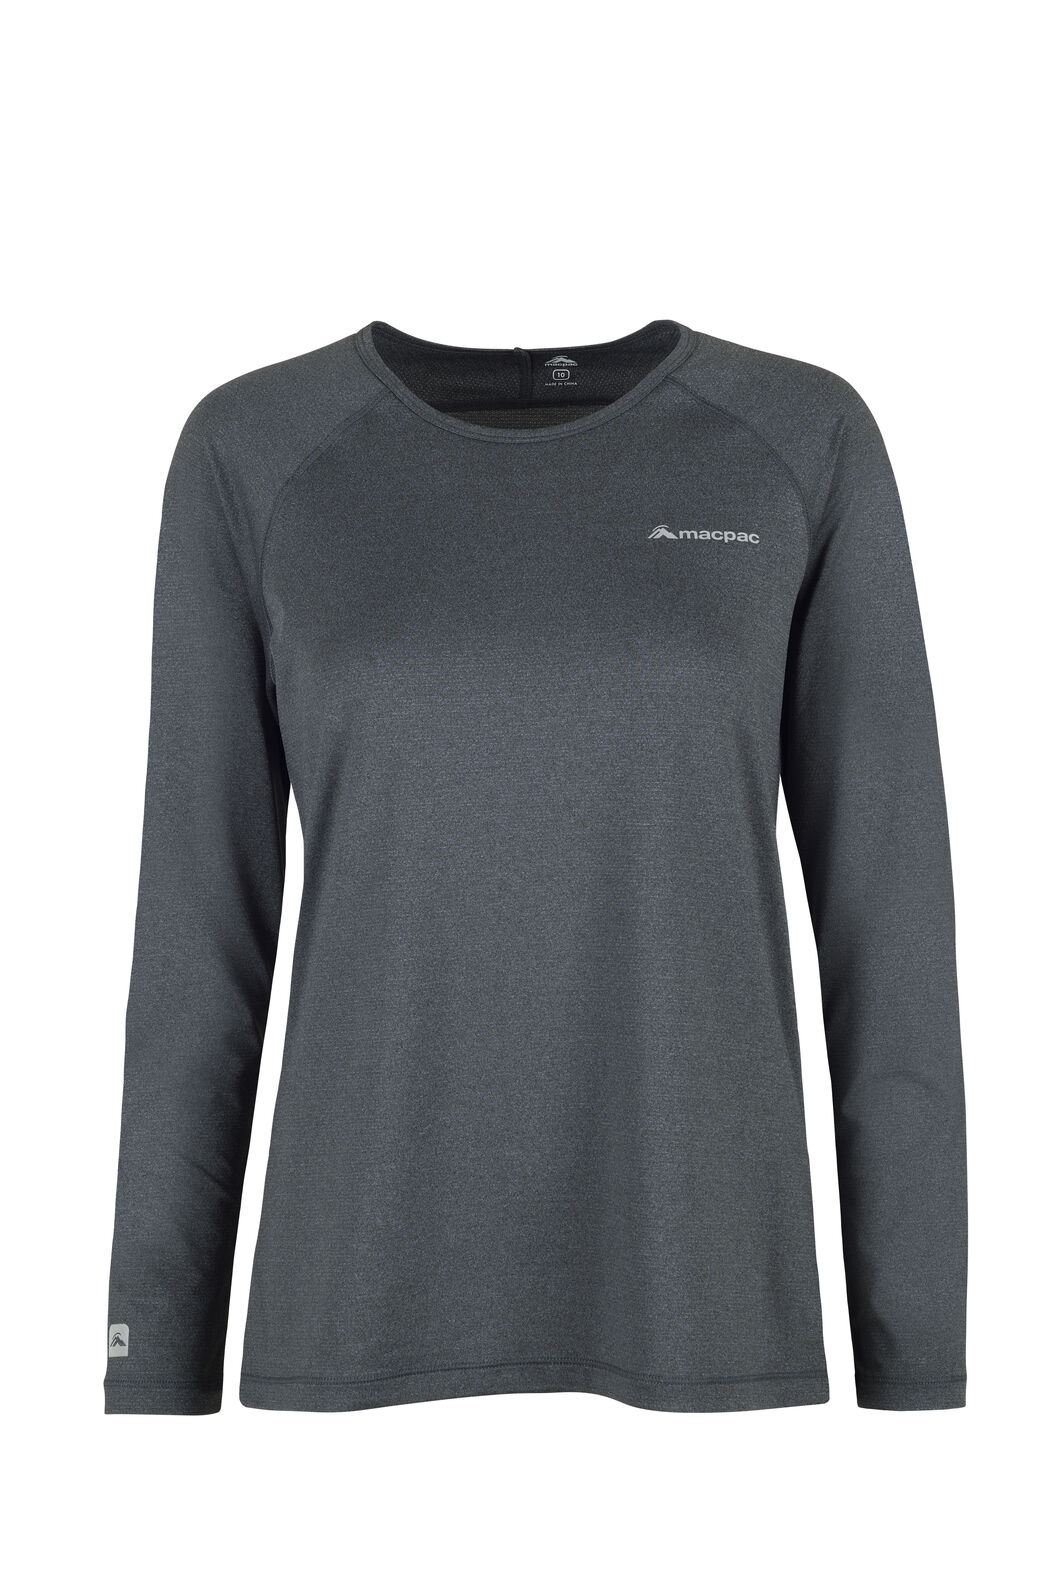 Macpac Eyre Long Sleeve Tee - Women's, Black, hi-res